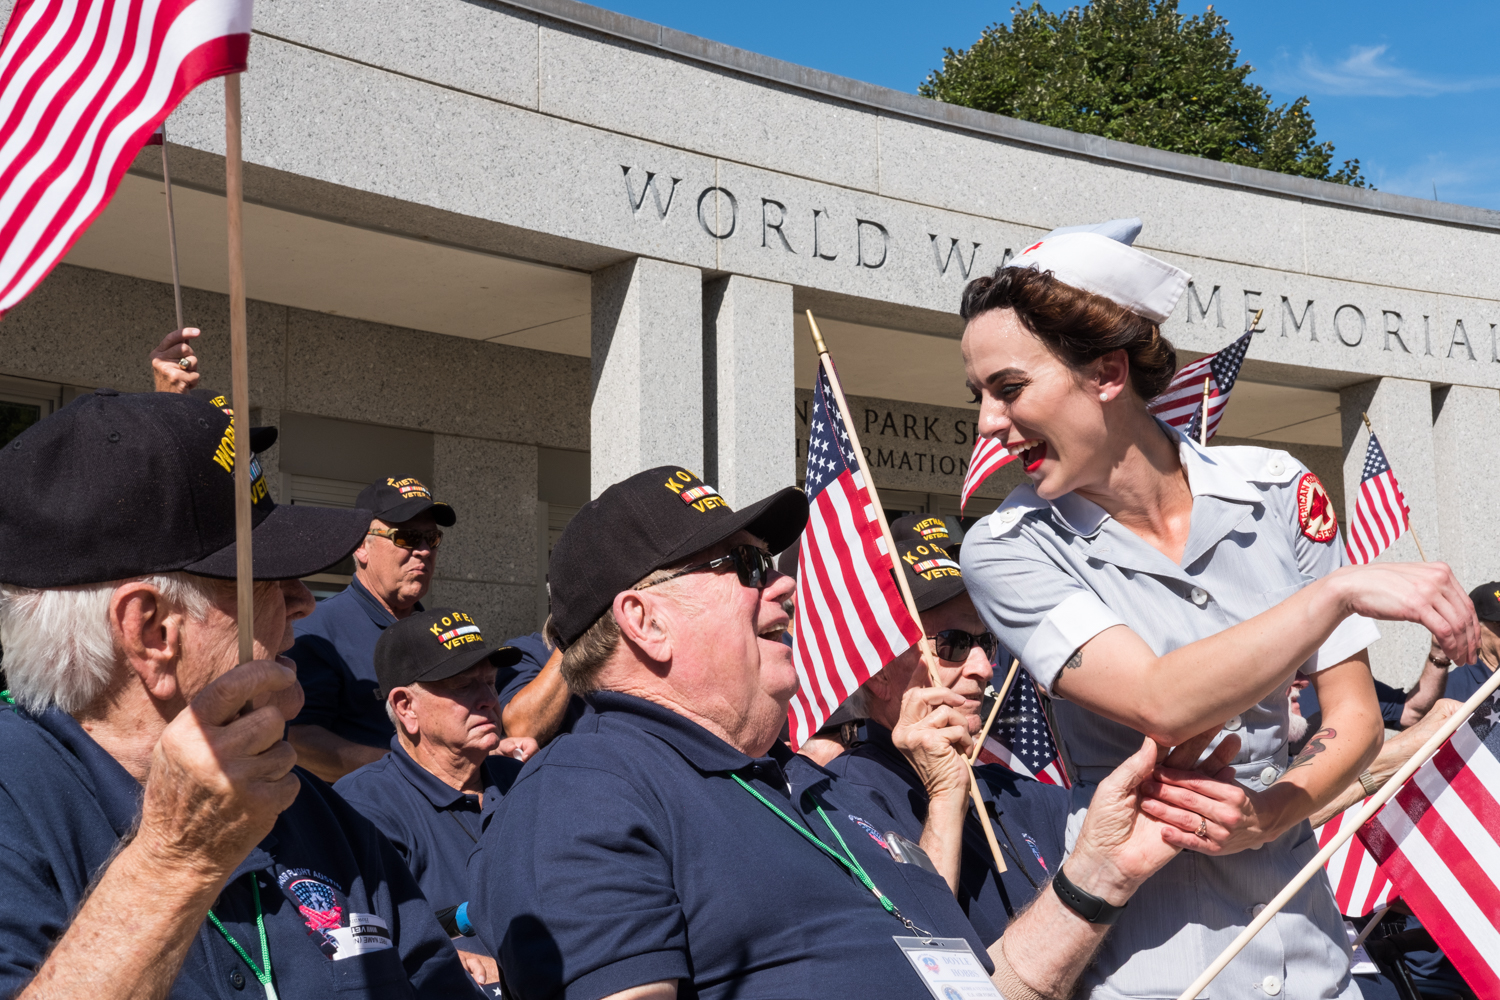 Hailey Shaw, a war re-enactor with the Allied Airmen's Preservation Society, greets veterans from the Austin, Texas Honor Flight Hub near the World War II Memorial in Washington, D.C. during an Honor Flight event. Honor Flight is when veterans from around America visit the memorials on The National Mall. The Allied Airmen's Preservation Society is a group of volunteers who gather during events to honor, preserve and remember veterans.